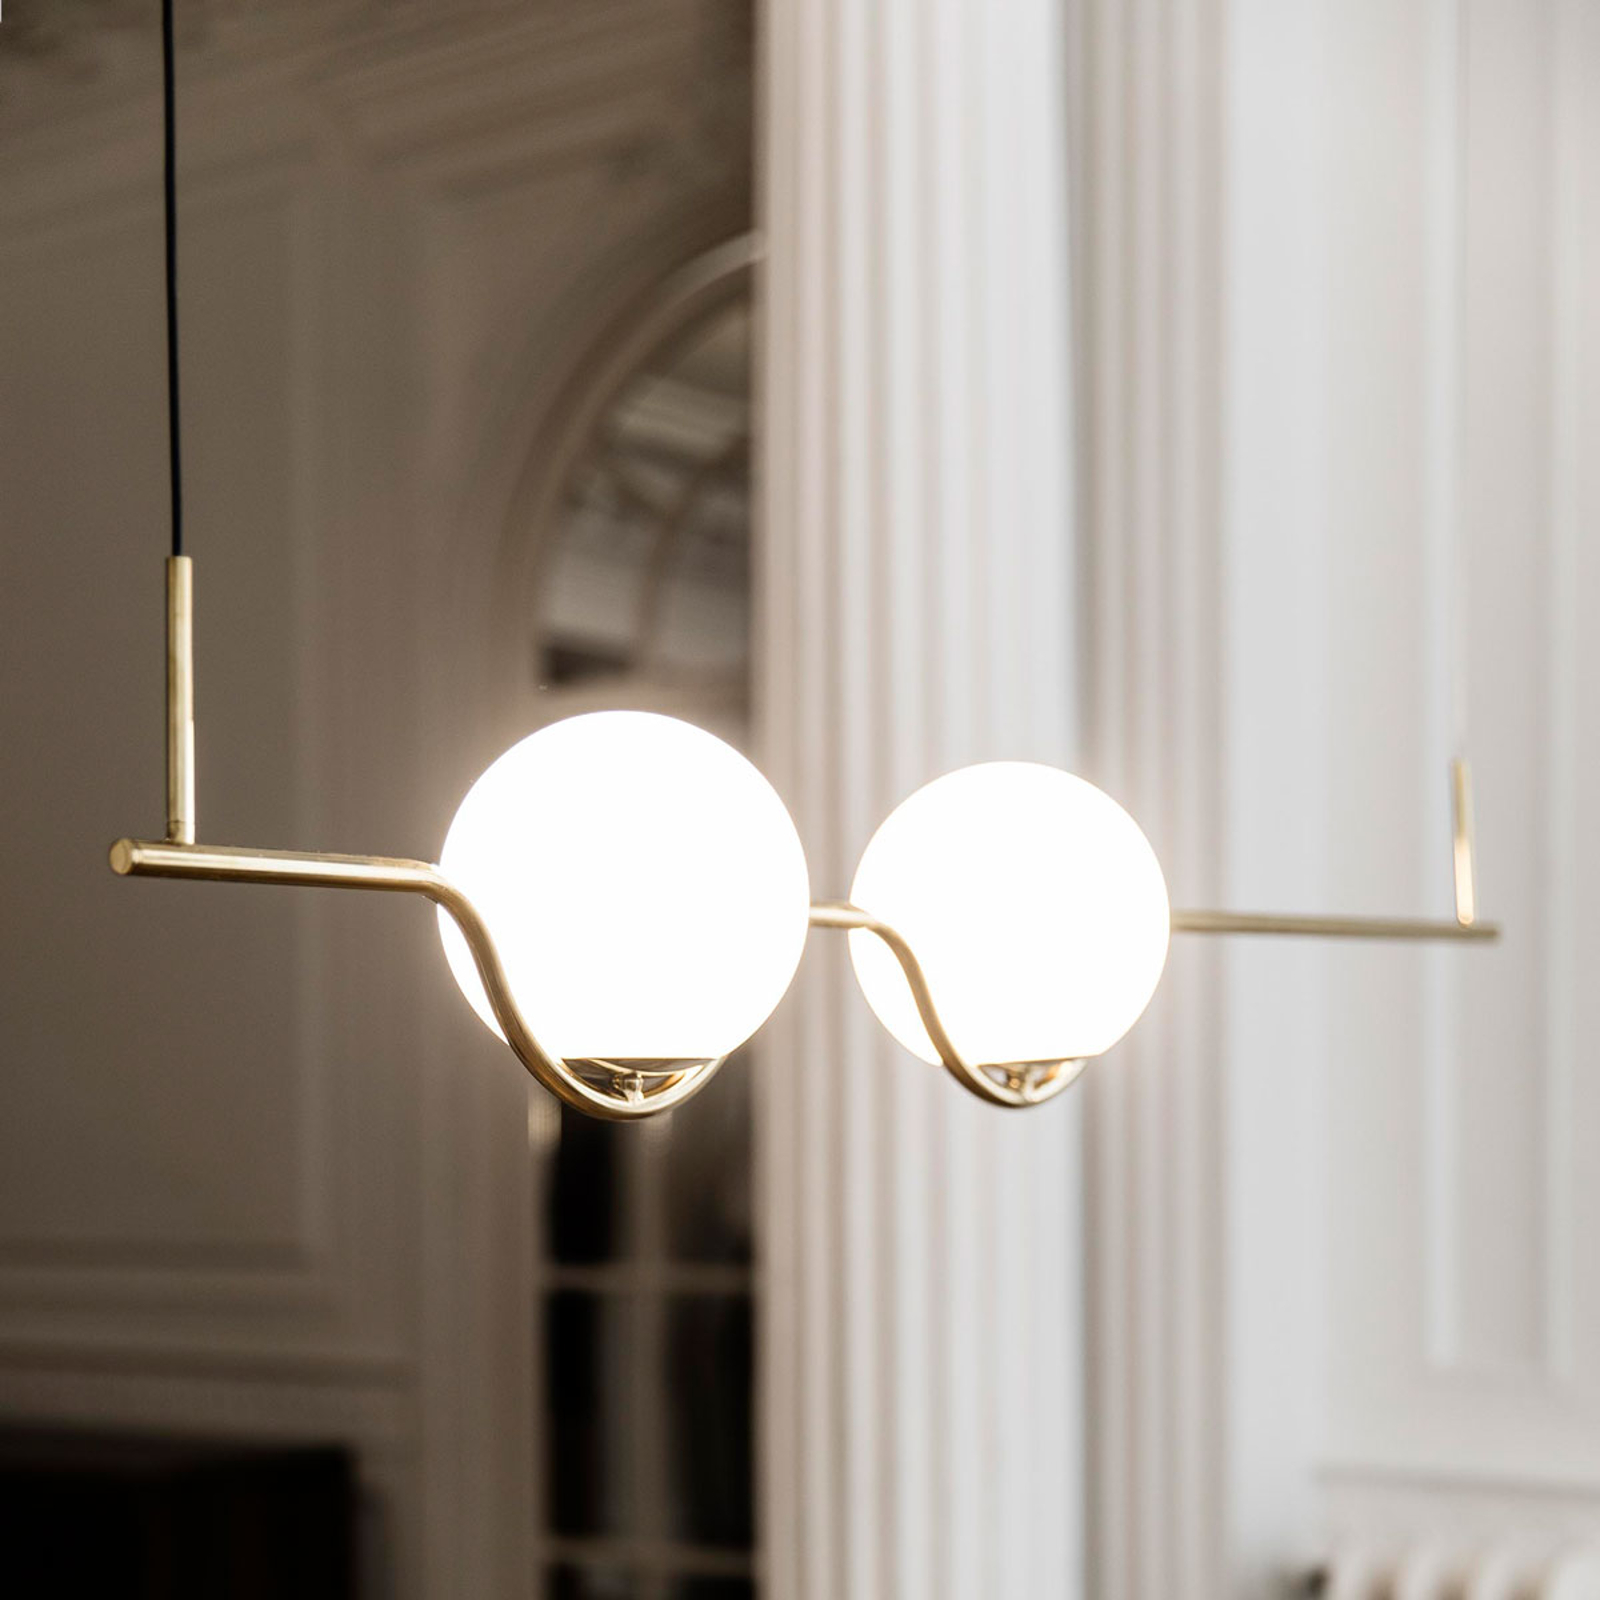 Design-hanglamp Le Vita, LED 2-lamps